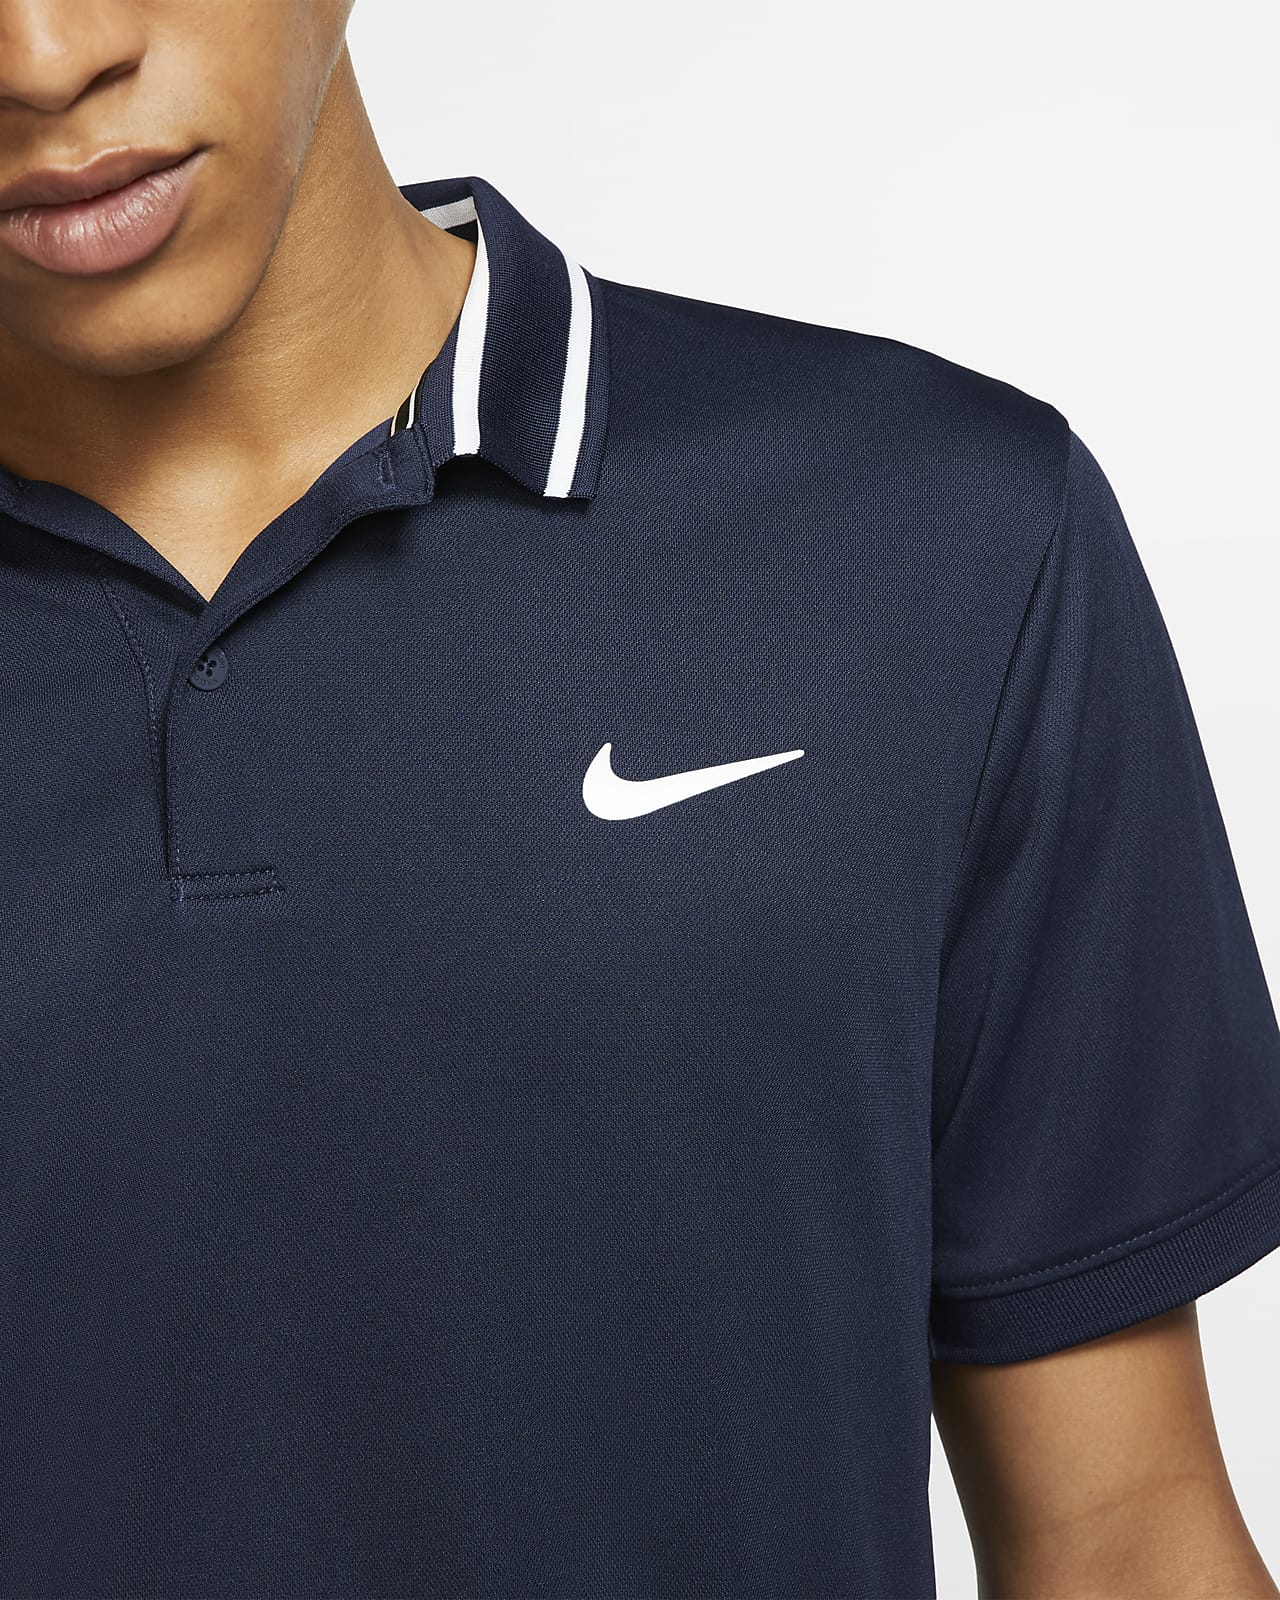 nada Aislar Mordrin  NikeCourt Dri-FIT Men's Tennis Polo. Nike IL